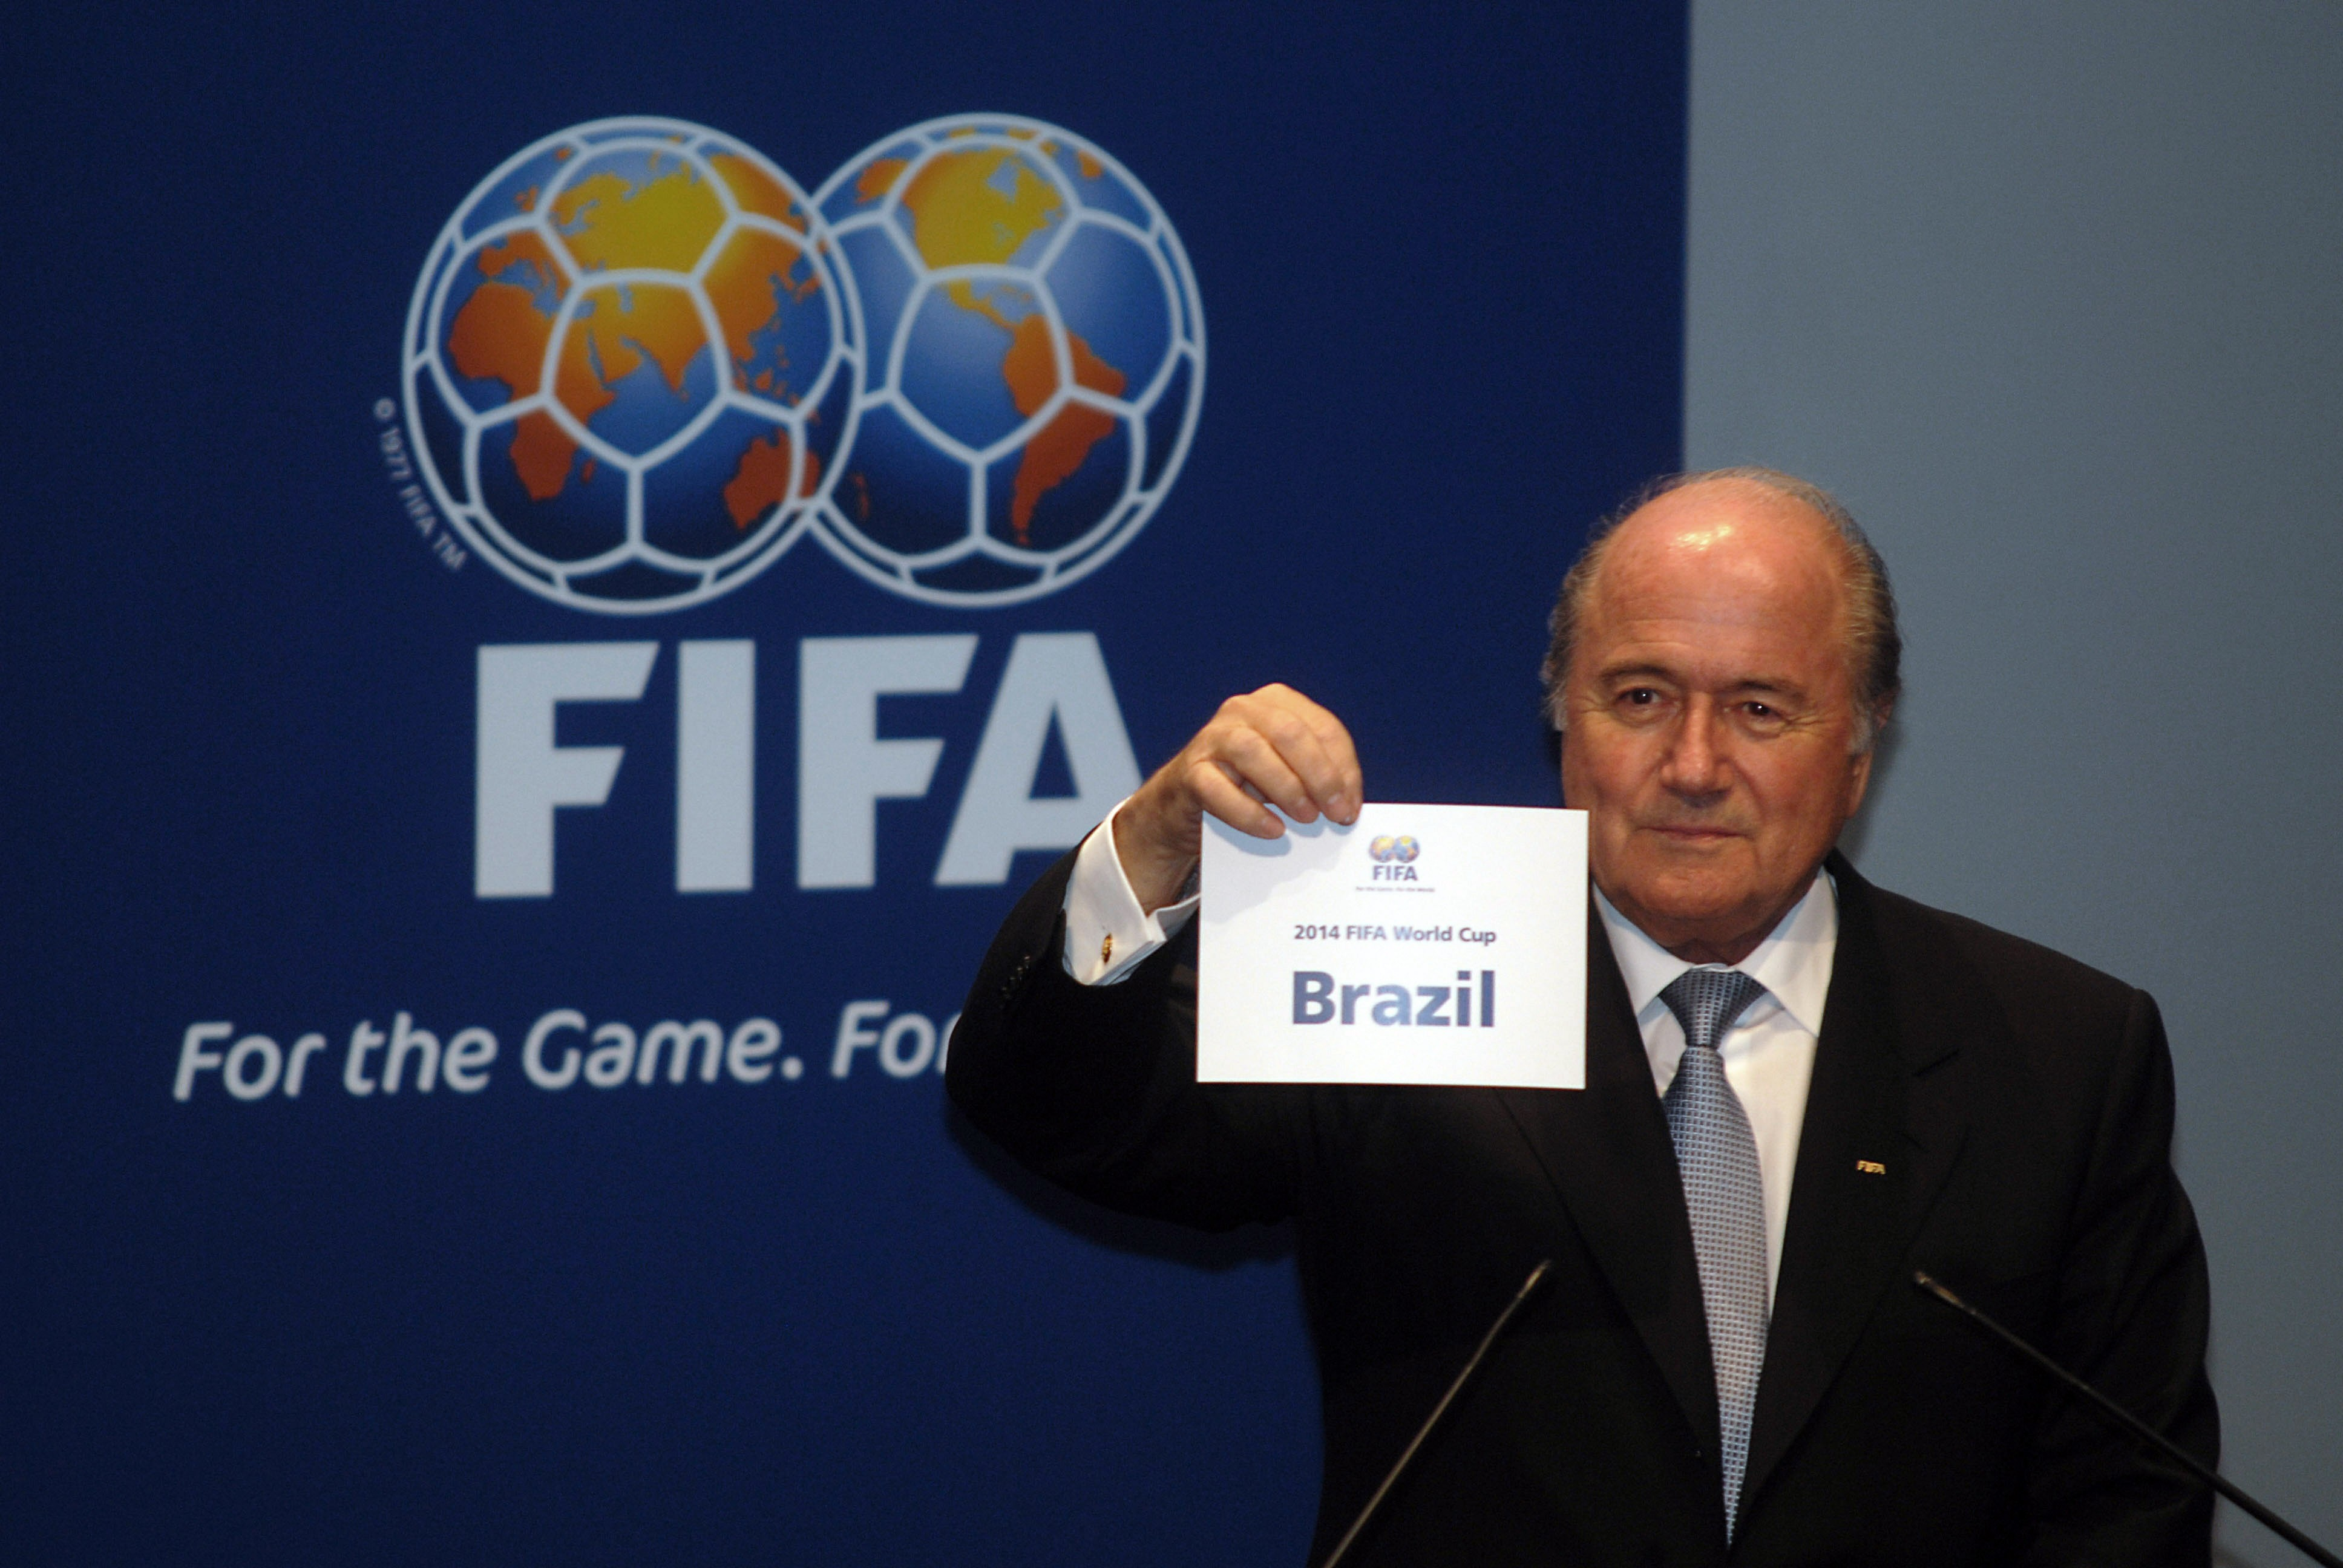 Sepp Blatter and the Brazilian victory.